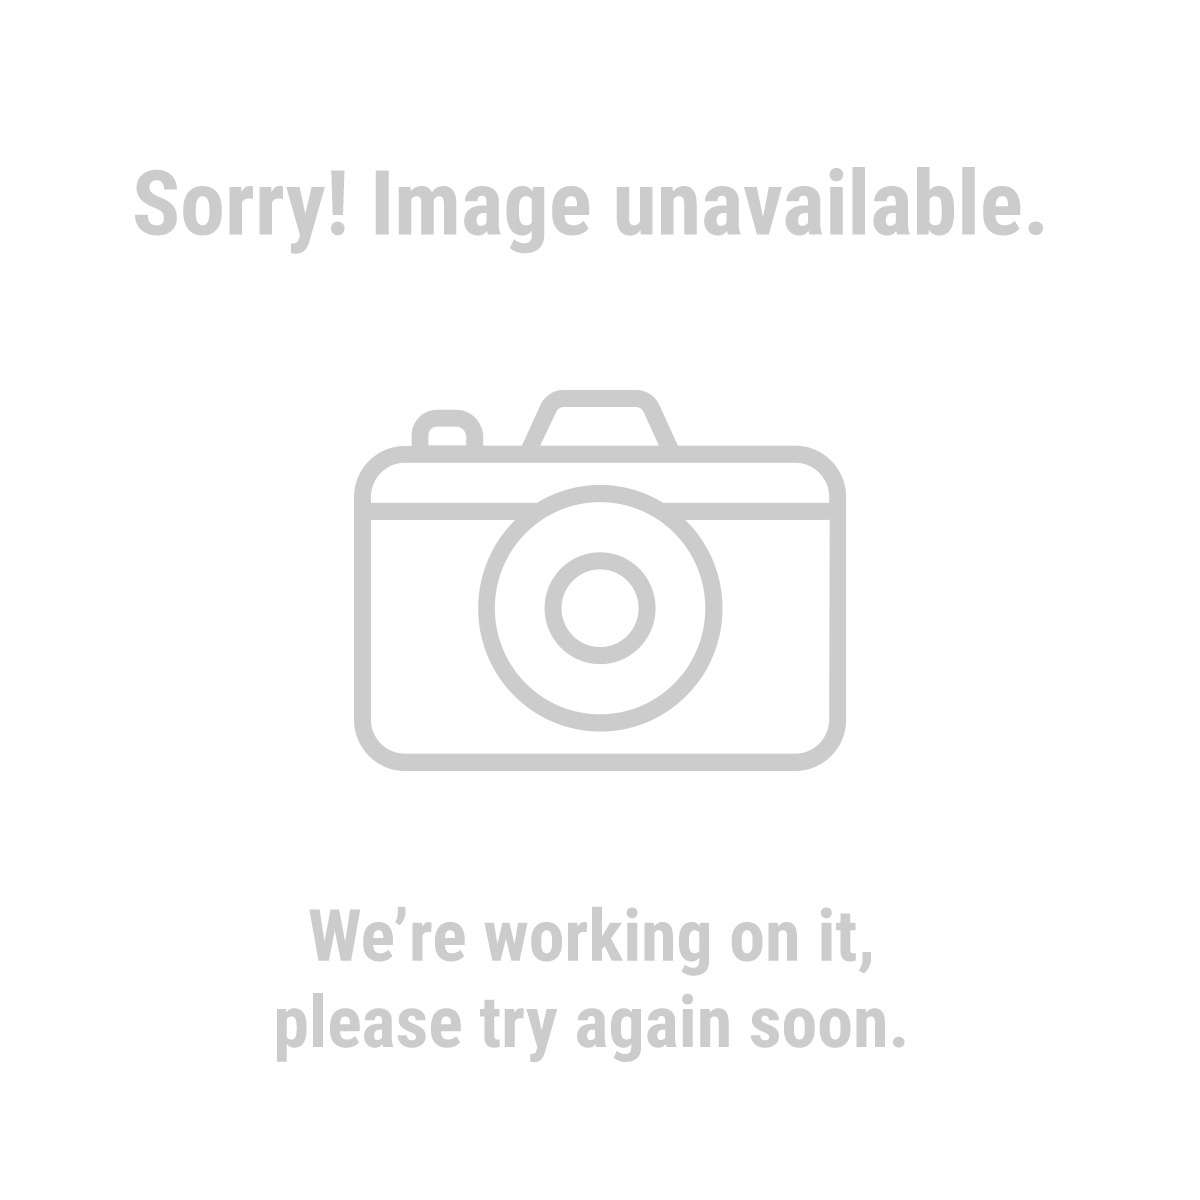 Warrior® 68116 9 Piece Carbide Grit Hole Saw Kit